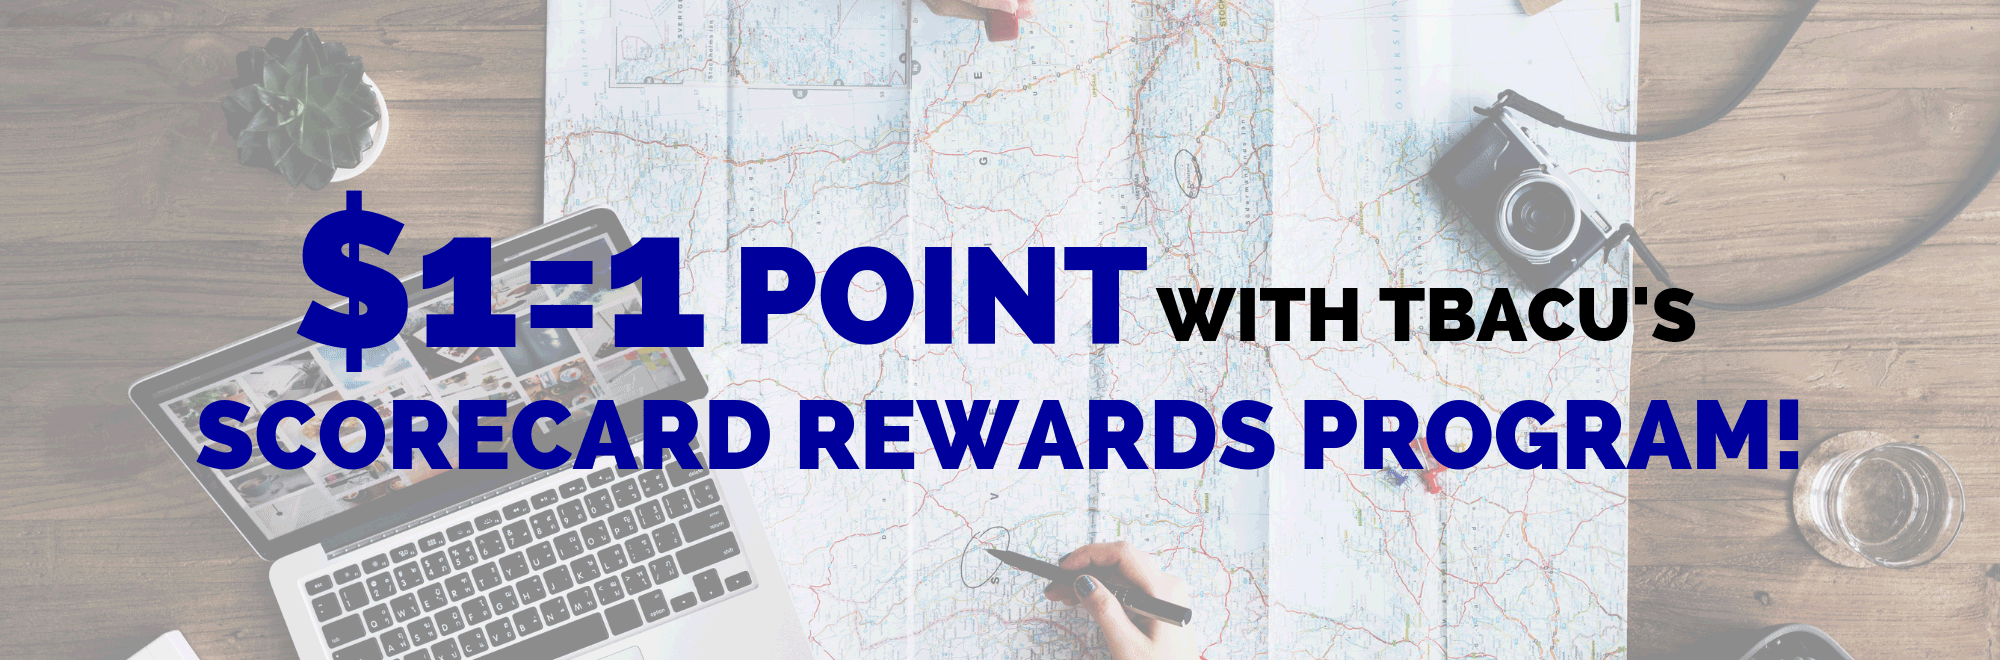 News Post for TBACU's ScoreCard Rewards Program